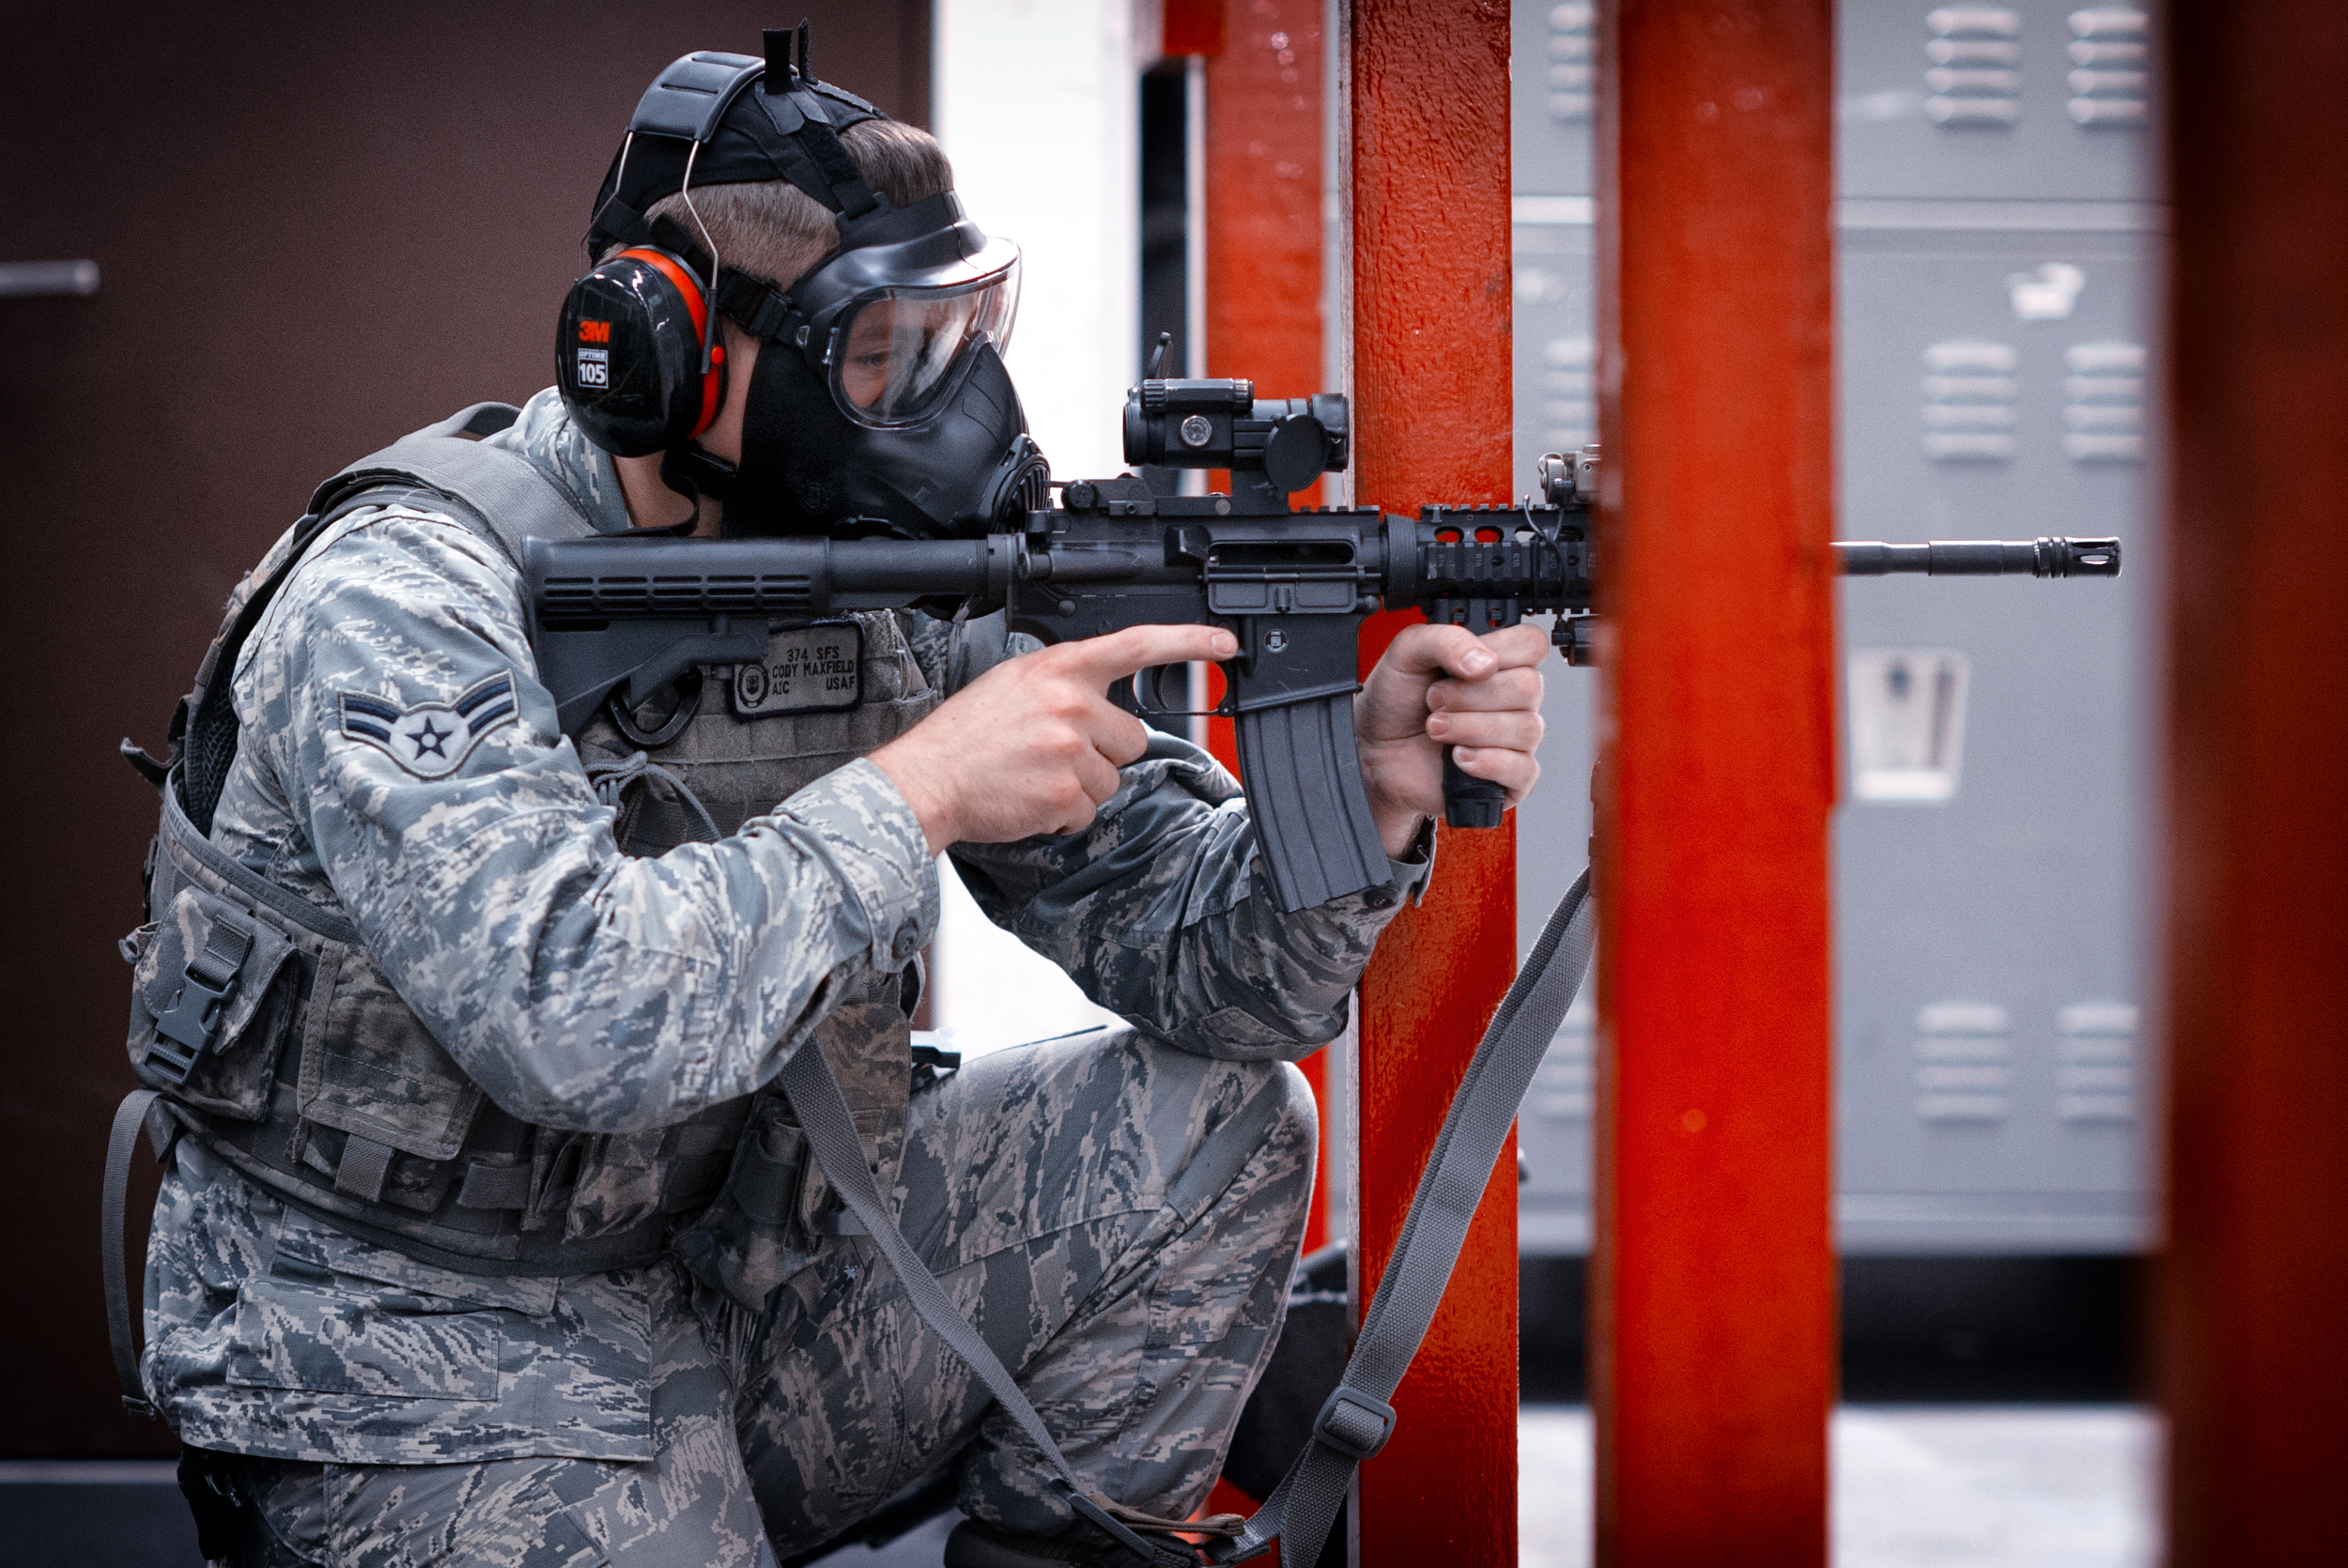 Airman 1st Class Cody Mayfield, 374th Security Forces Squadron patrolman, fires an M-4 Carbine during a Combat Arms Training and Maintenance course at Yokota Air Base, Japan, Oct. 8, 2015. Airmen have to meet minimum qualifications in order to pass the course; they must demonstrate full knowledge of safety rules, procedures and characteristics of multiple weapons and types of ammunition, while also showing target accuracy firing the weapon. (U.S. Air Force photo by Airman 1st Class Delano Scott/Released)